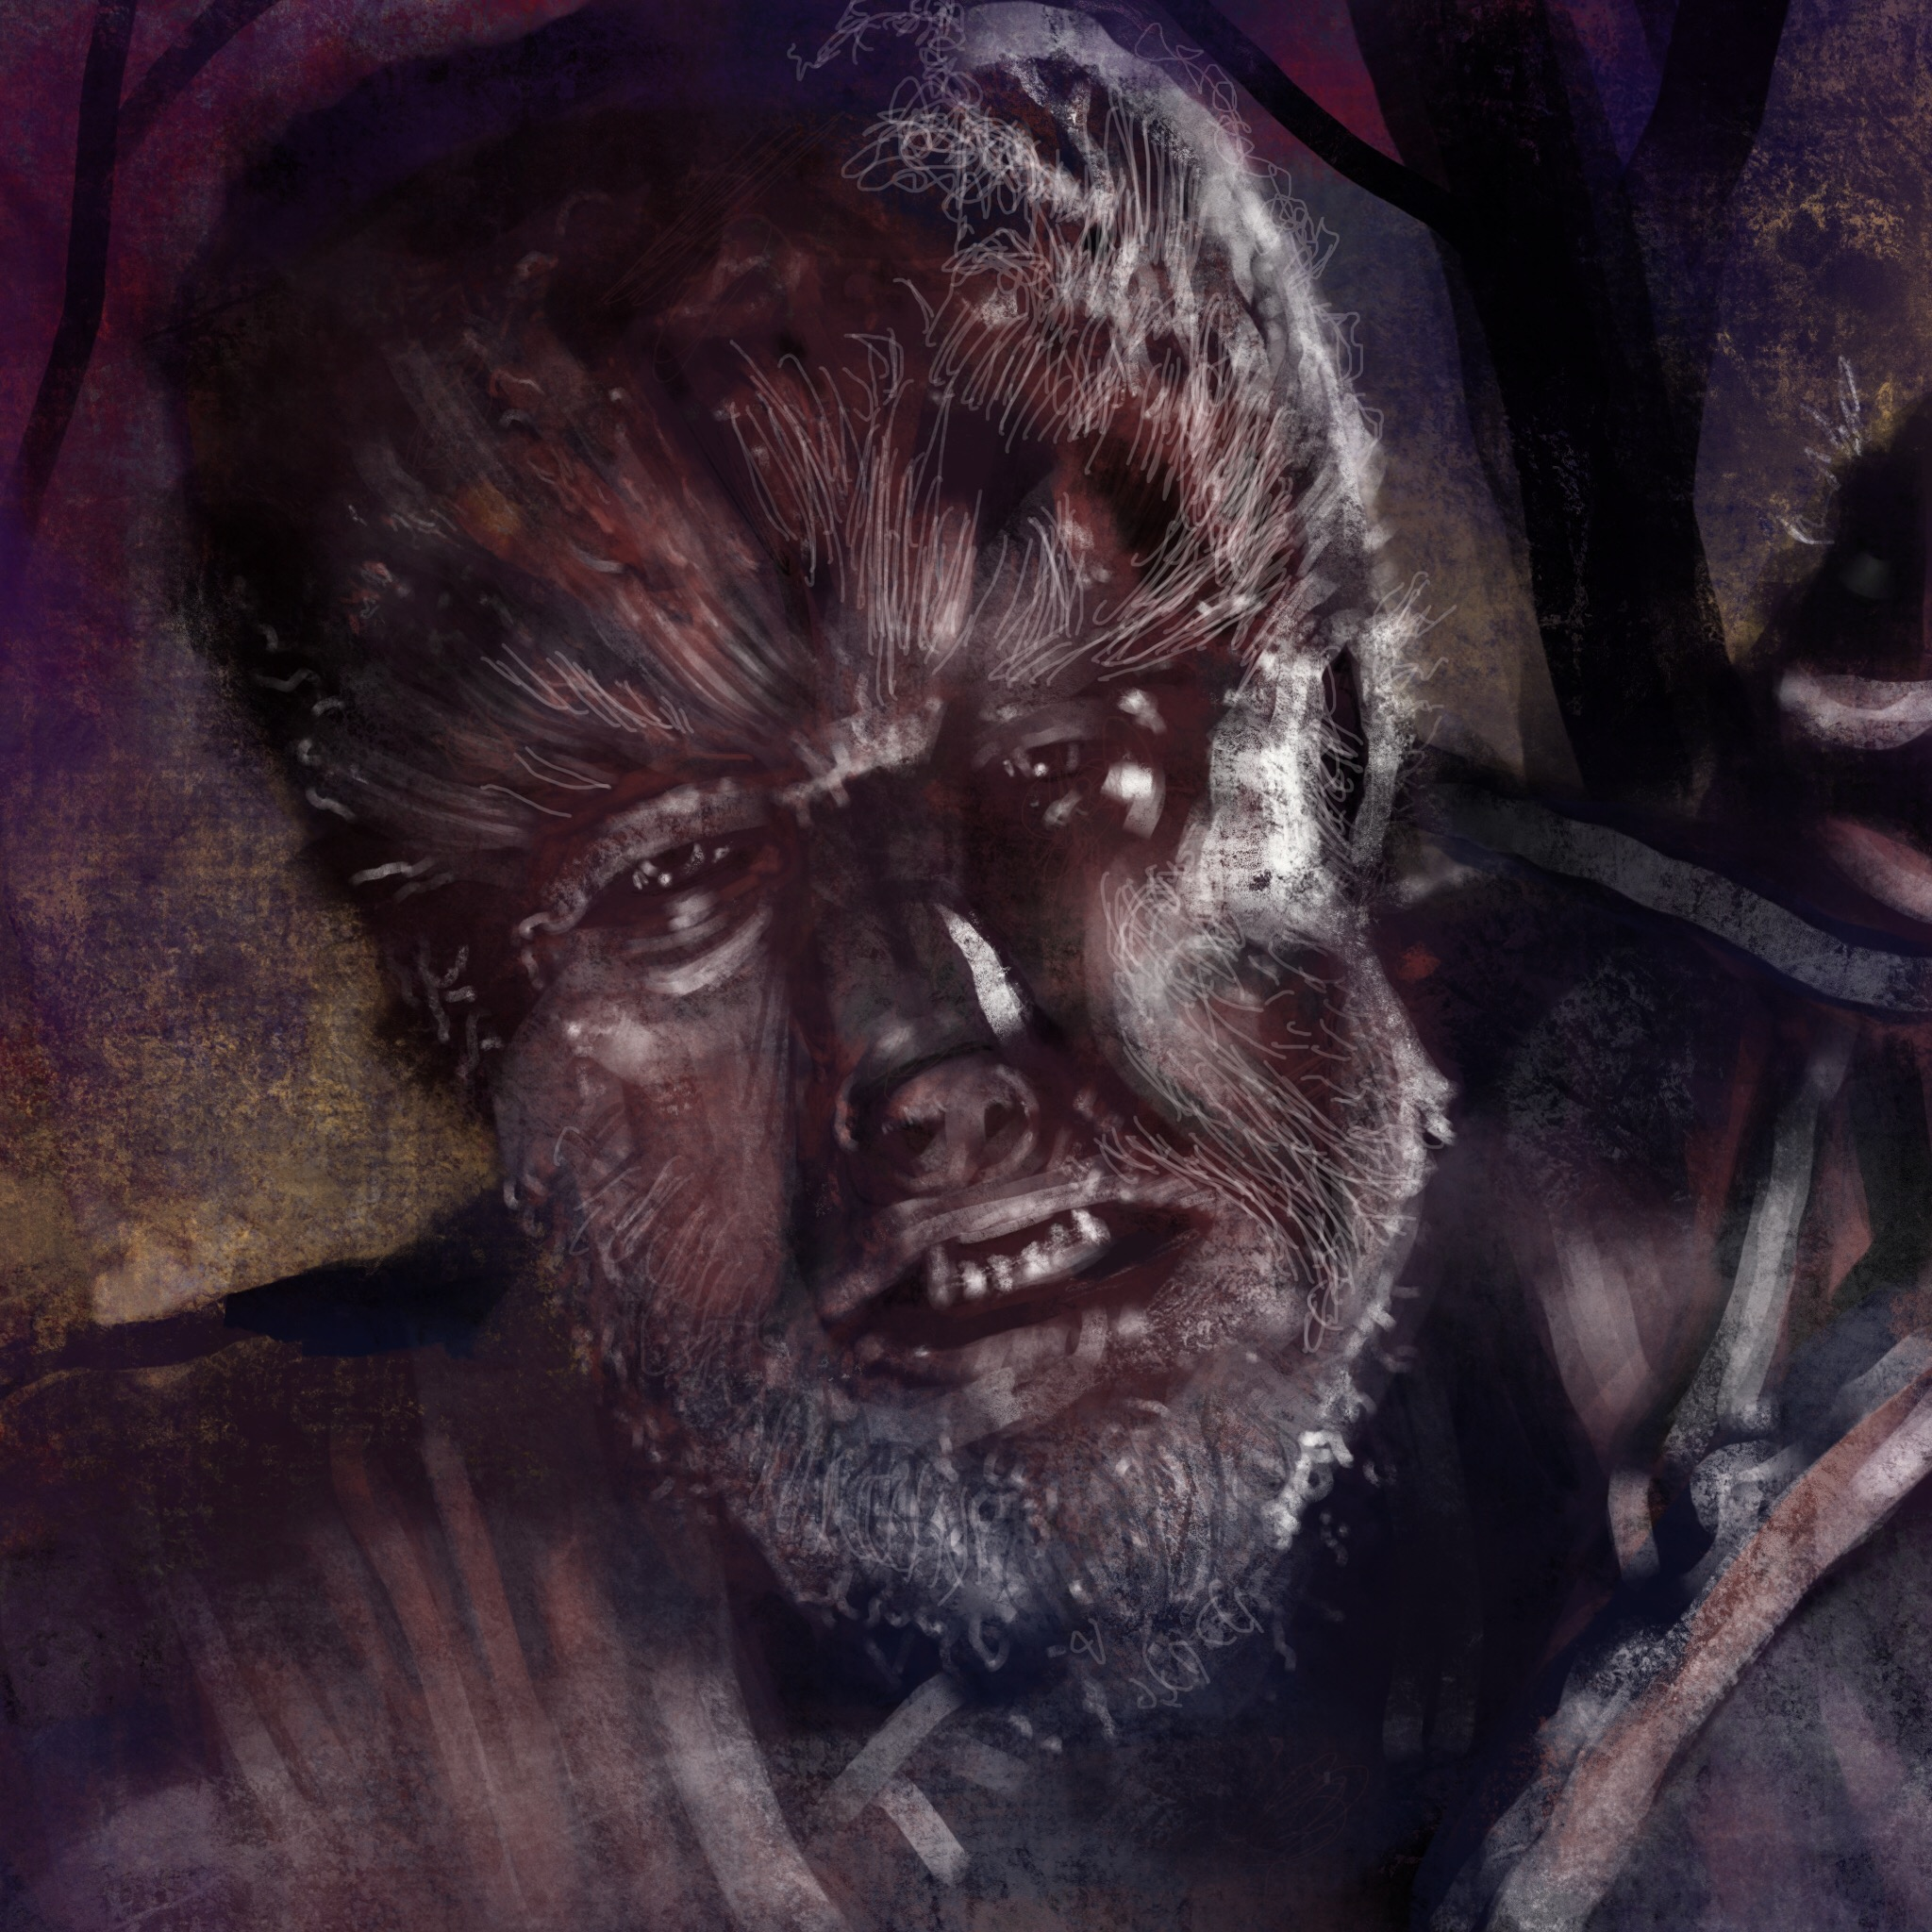 Digital Painting of the Wolfman